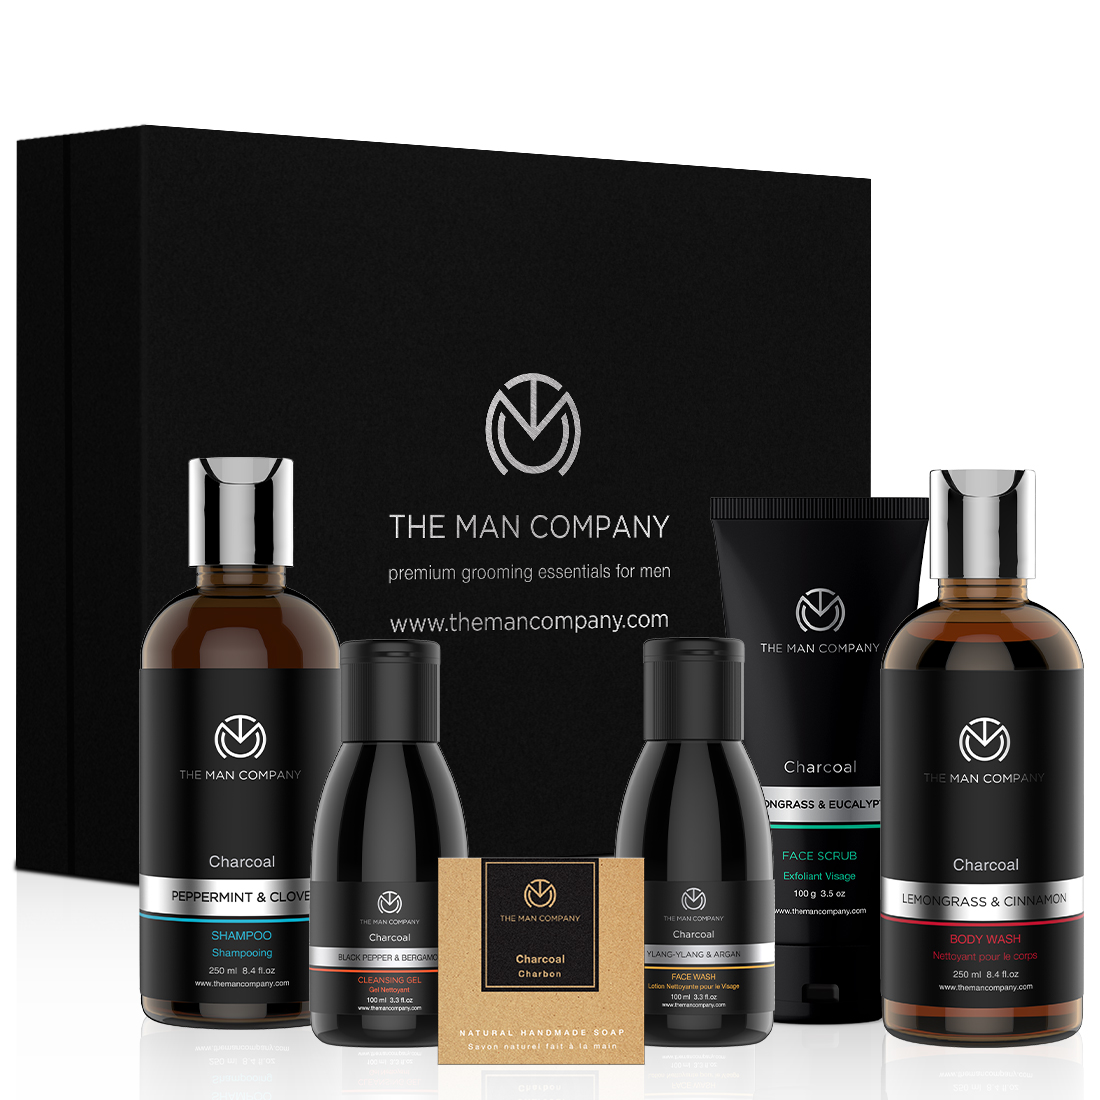 The Charcoal Gang- Charcoal Grooming Kit By The Man Company Packed In Elegant Gift Box